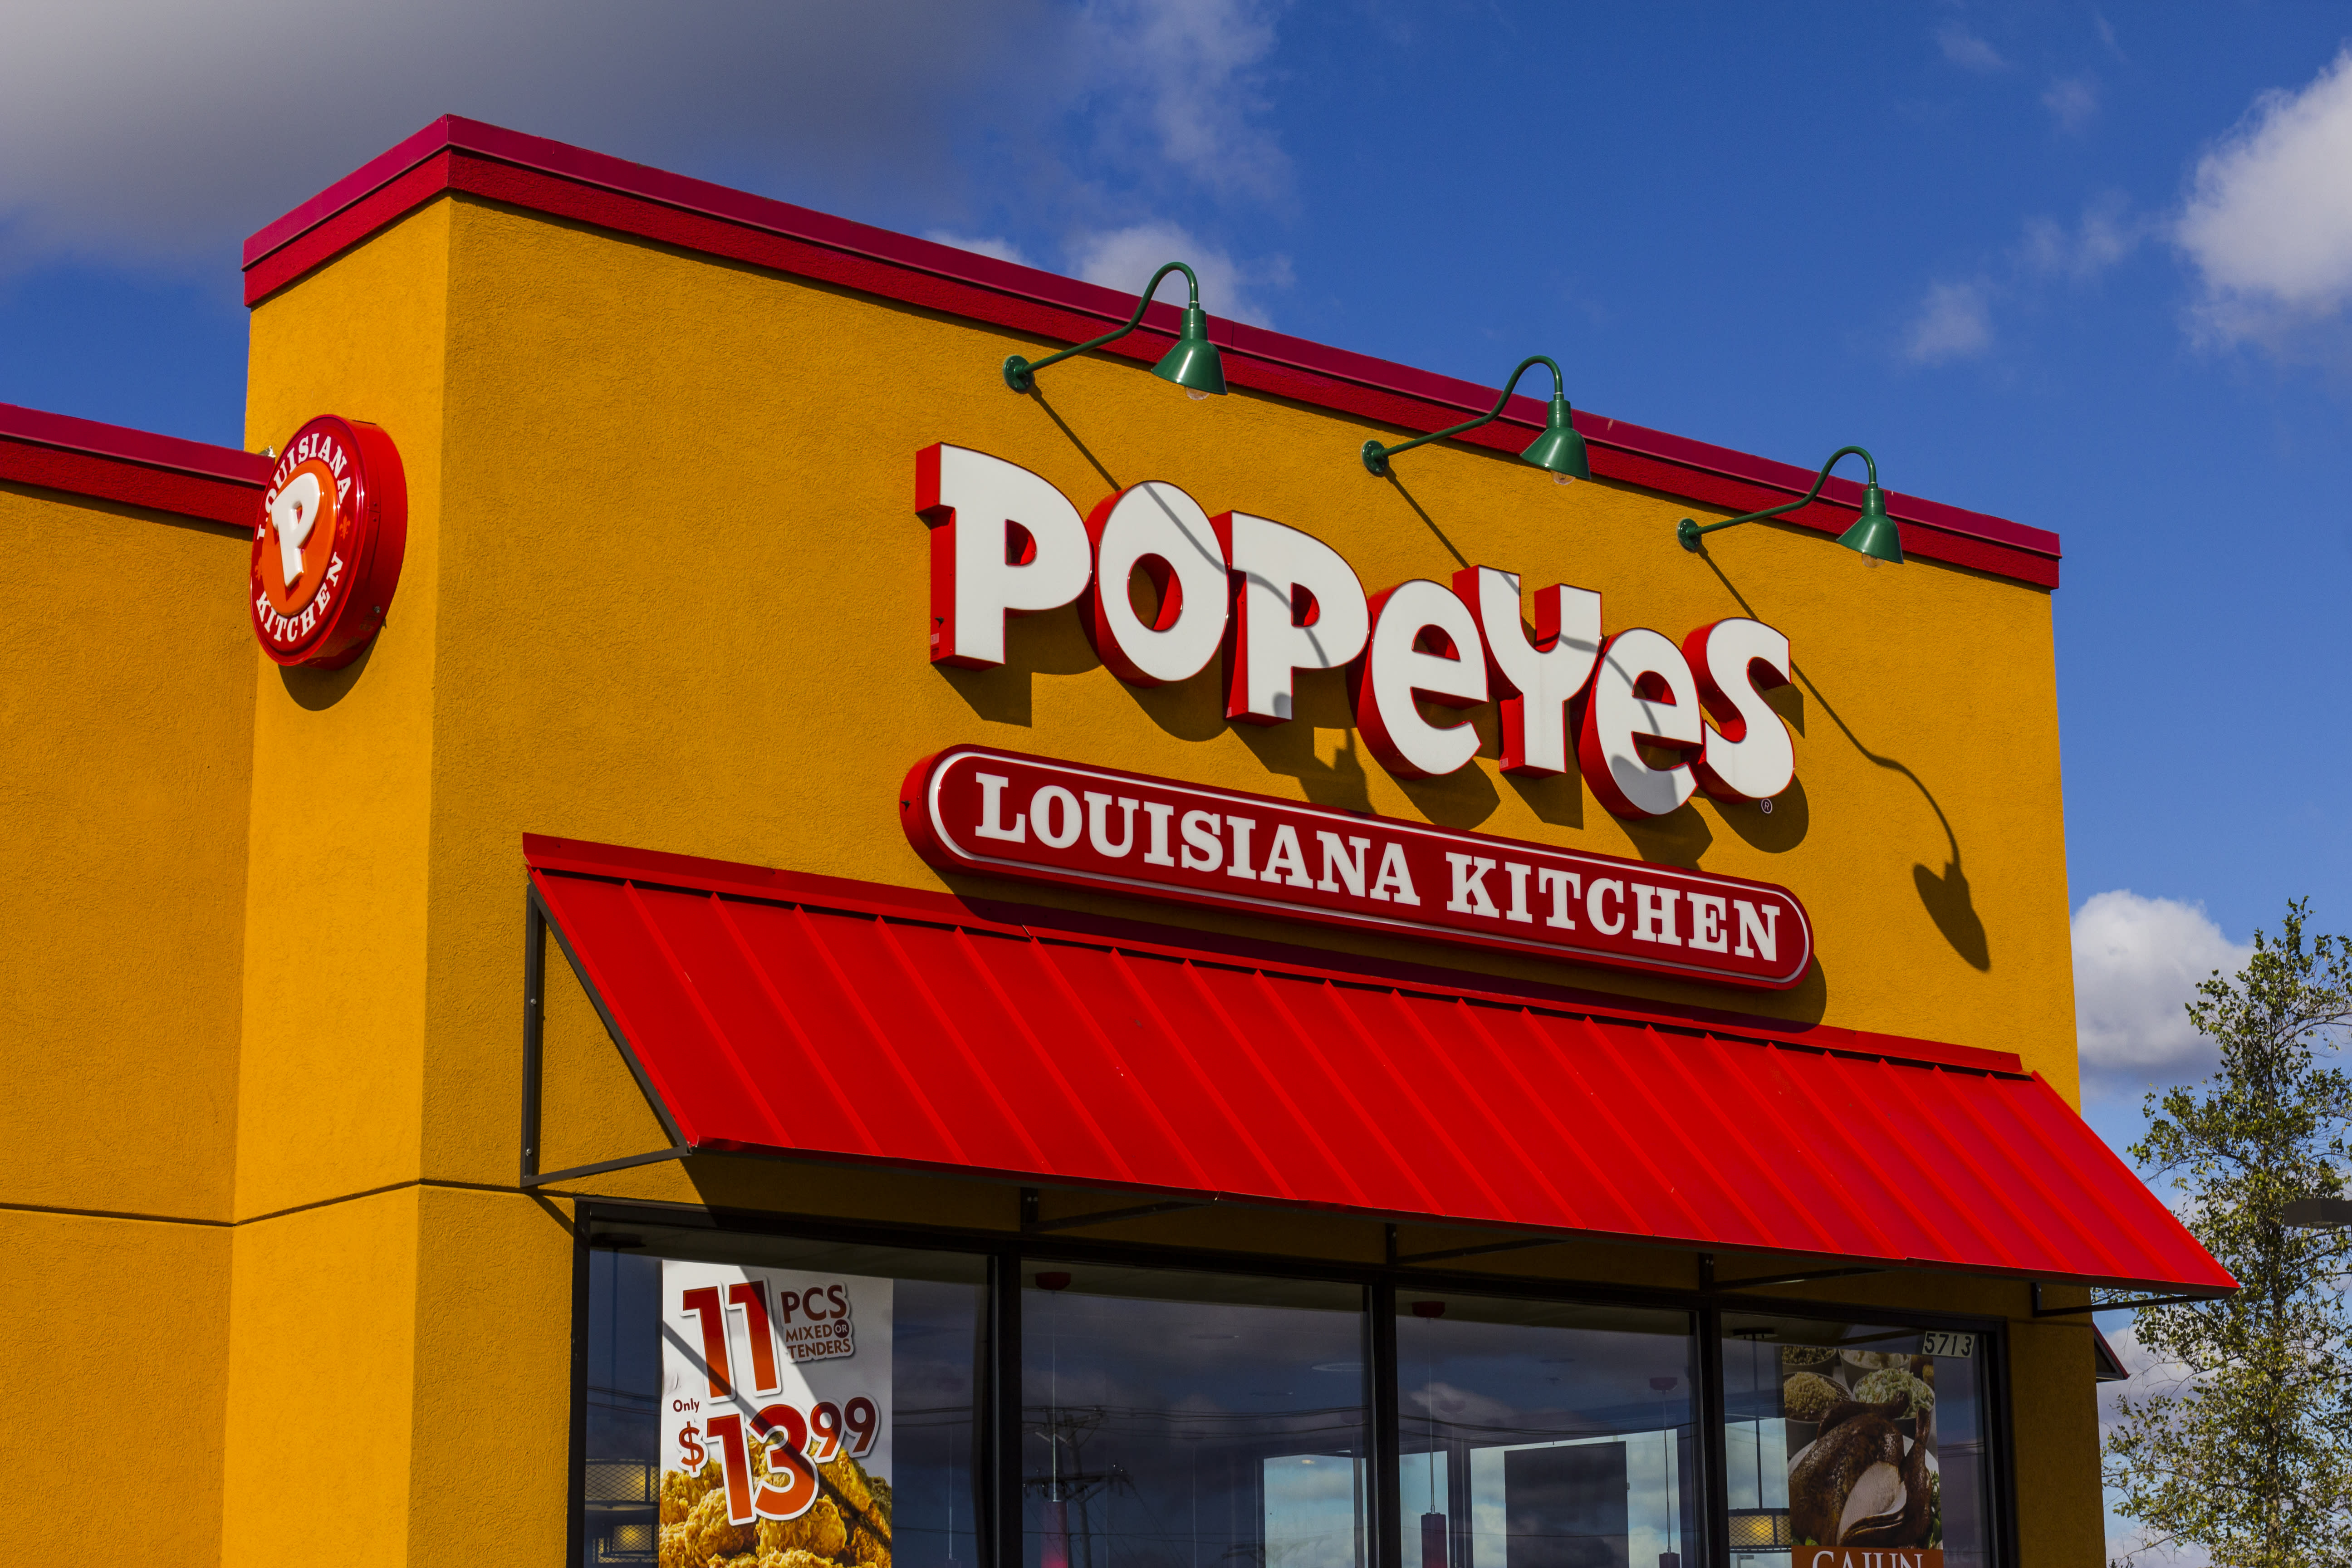 Popeyes has created the new war over chicken sandwiches